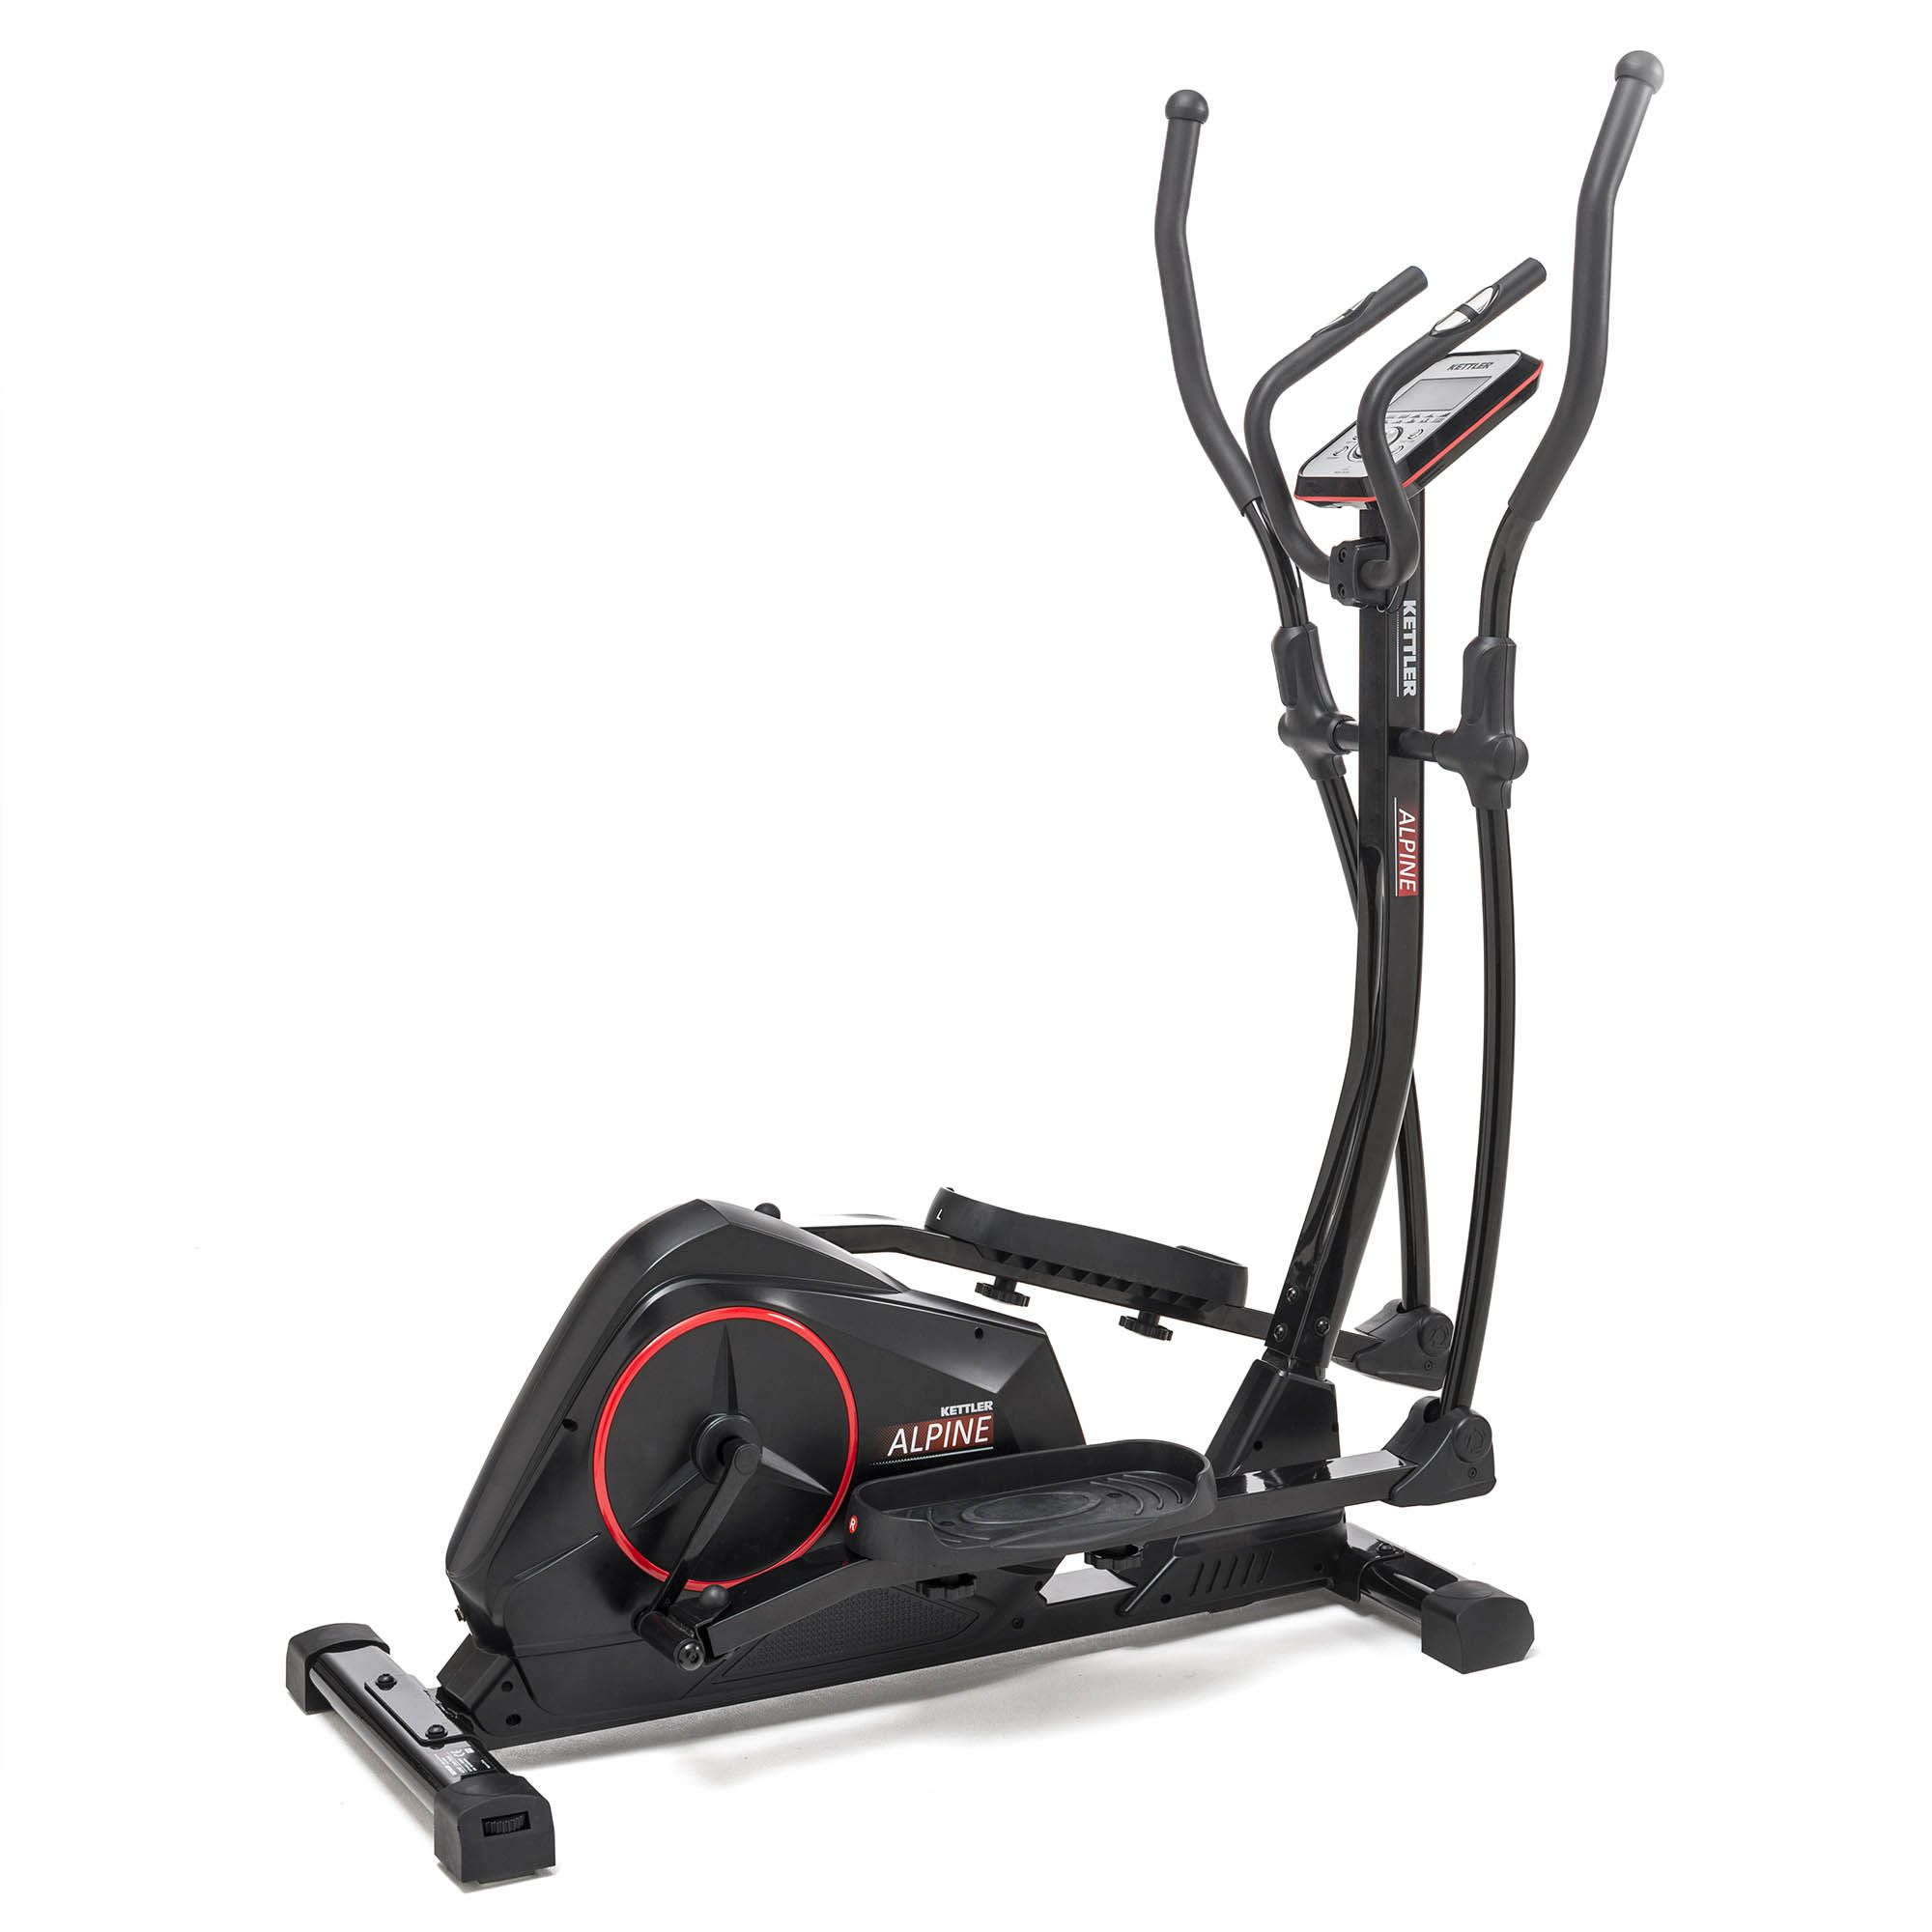 Kettler Fitness Kettler Alpine Elliptical Cross Trainer Sweatband